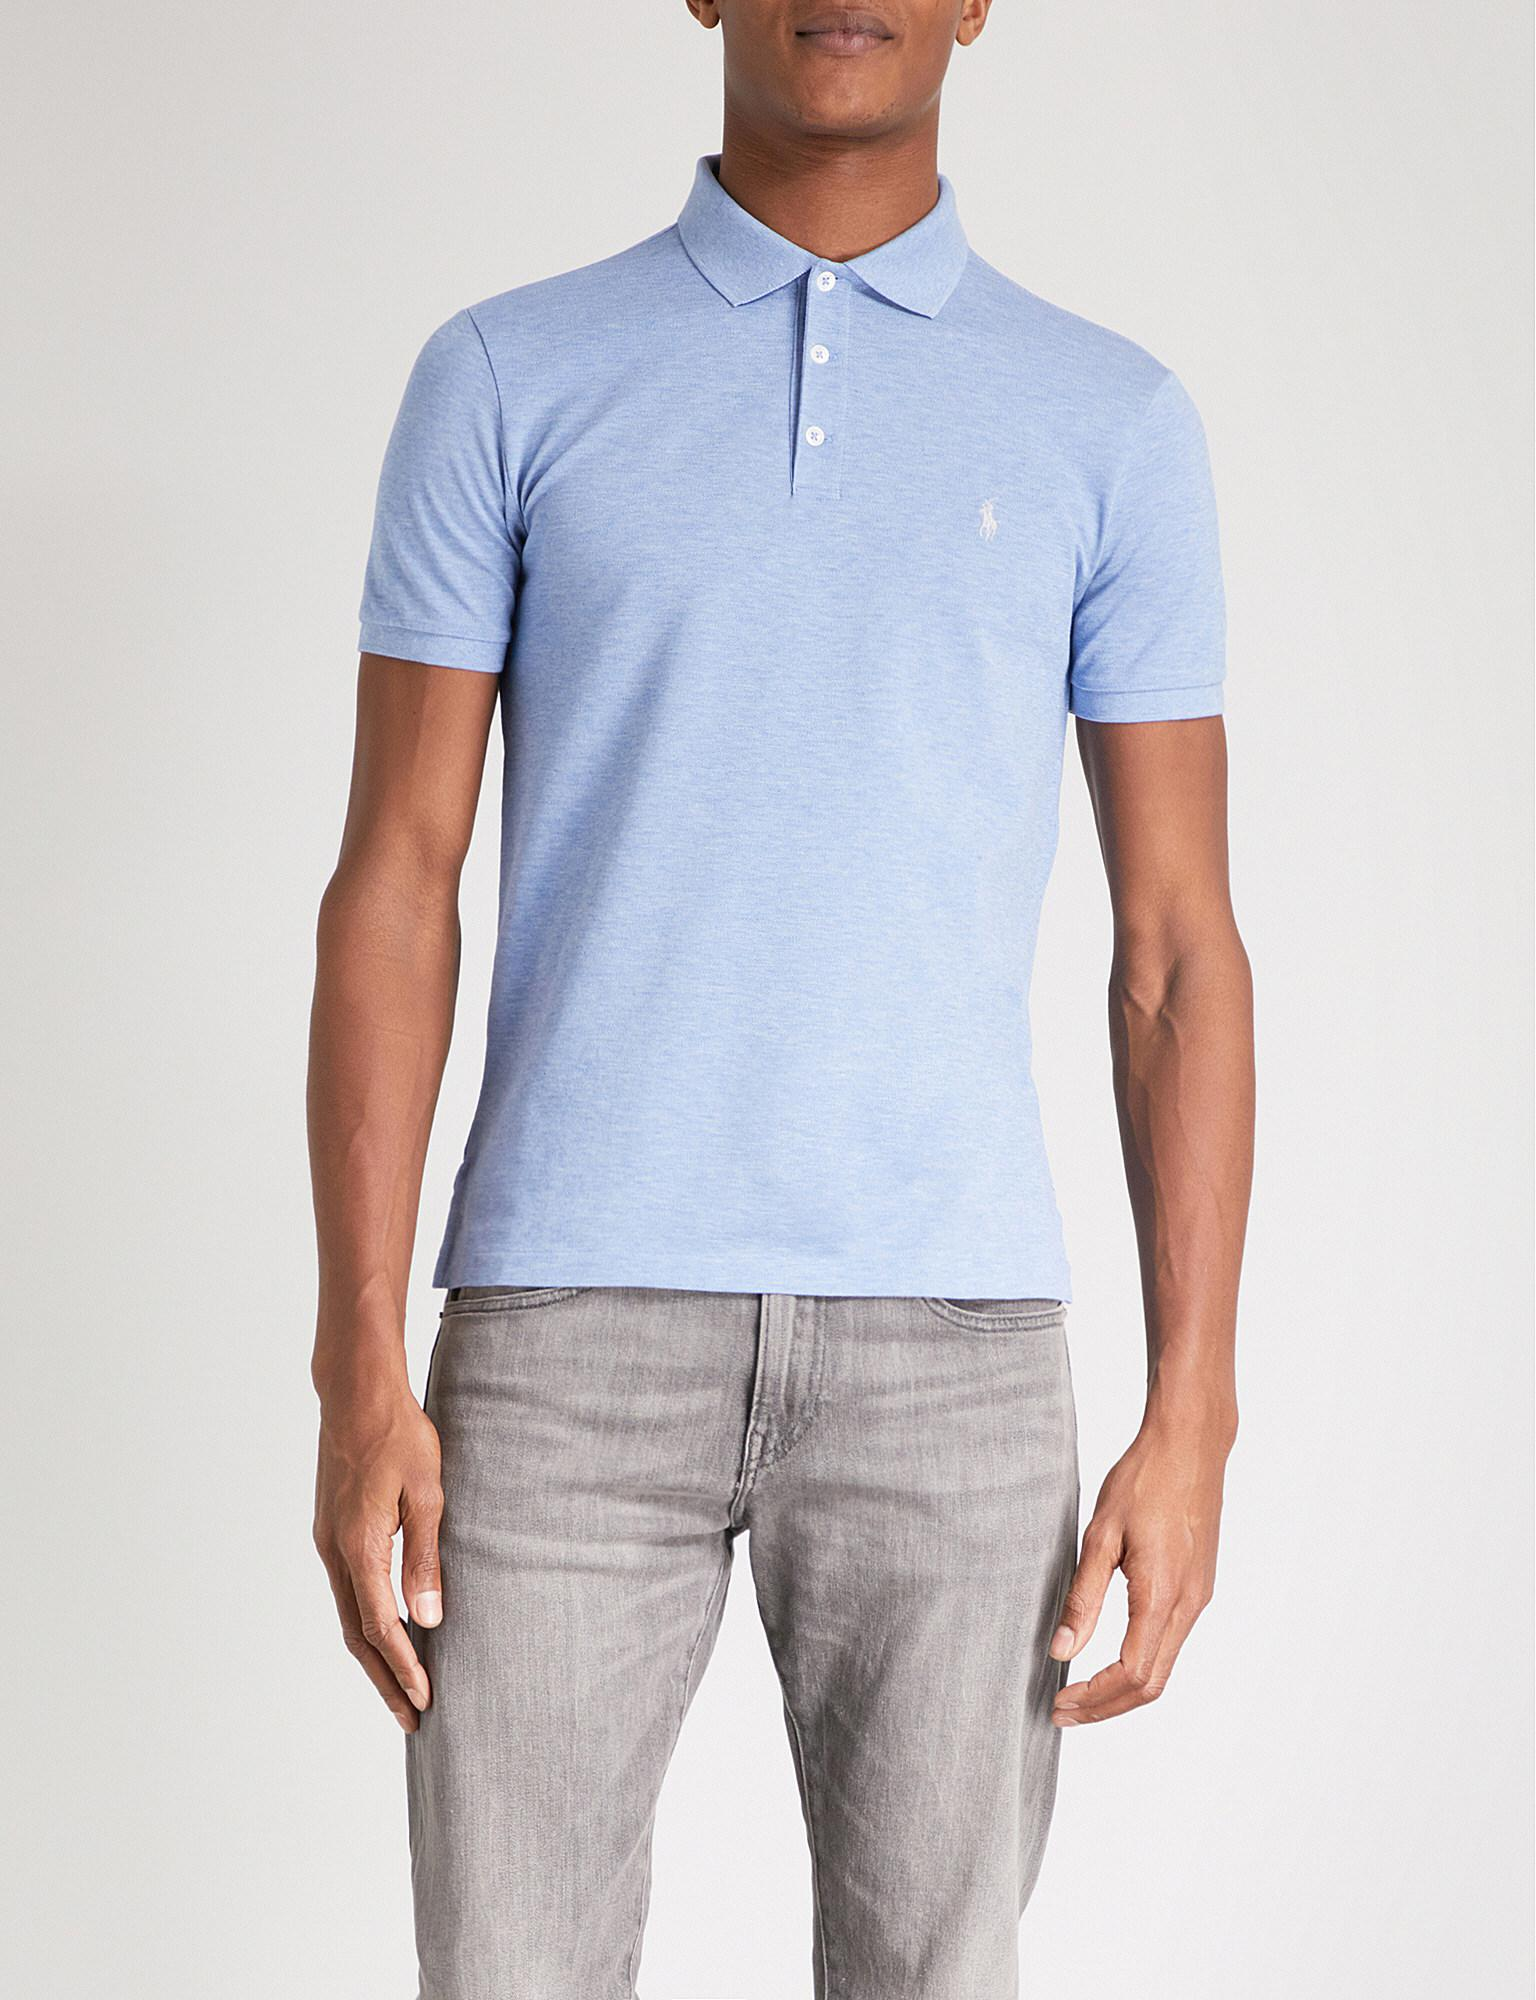 d6d6fa7a Lyst - Polo Ralph Lauren Slim-fit Soft-touch Cotton Polo Shirt in ...